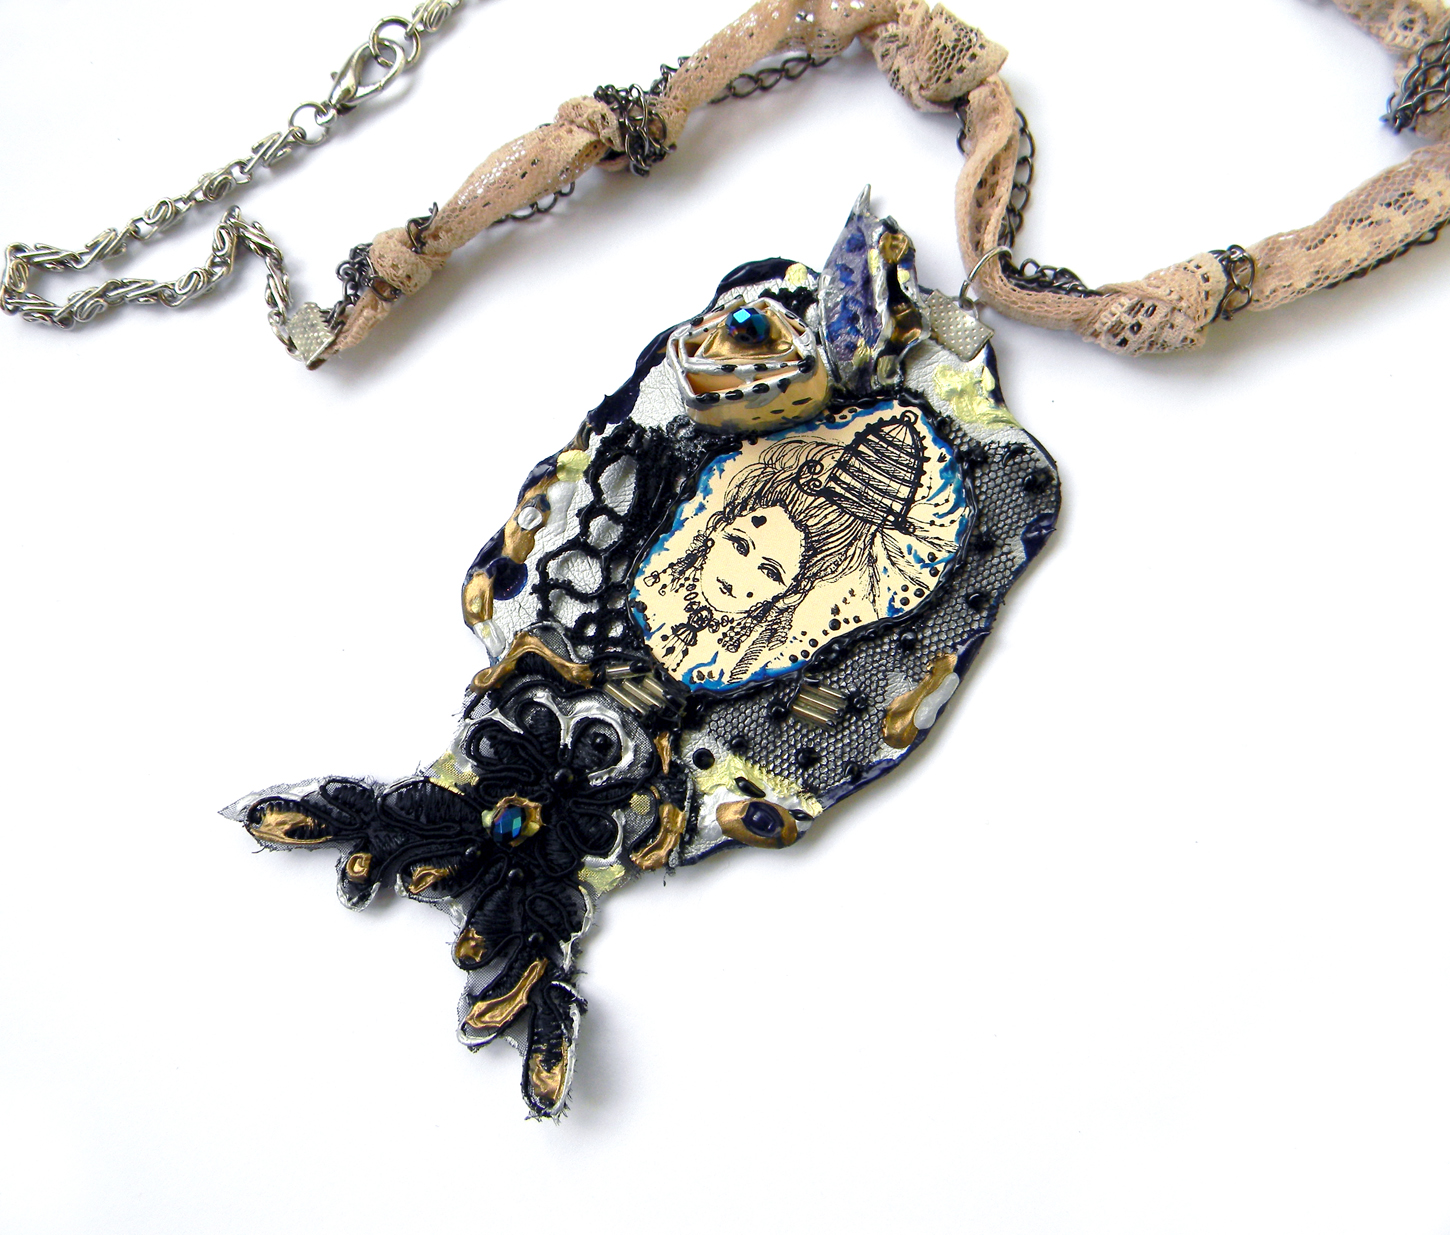 Uniuqe Handmade Jewelry Original Necklace Fashion Handcrafted Jewelry Rococo Marie Antoinette